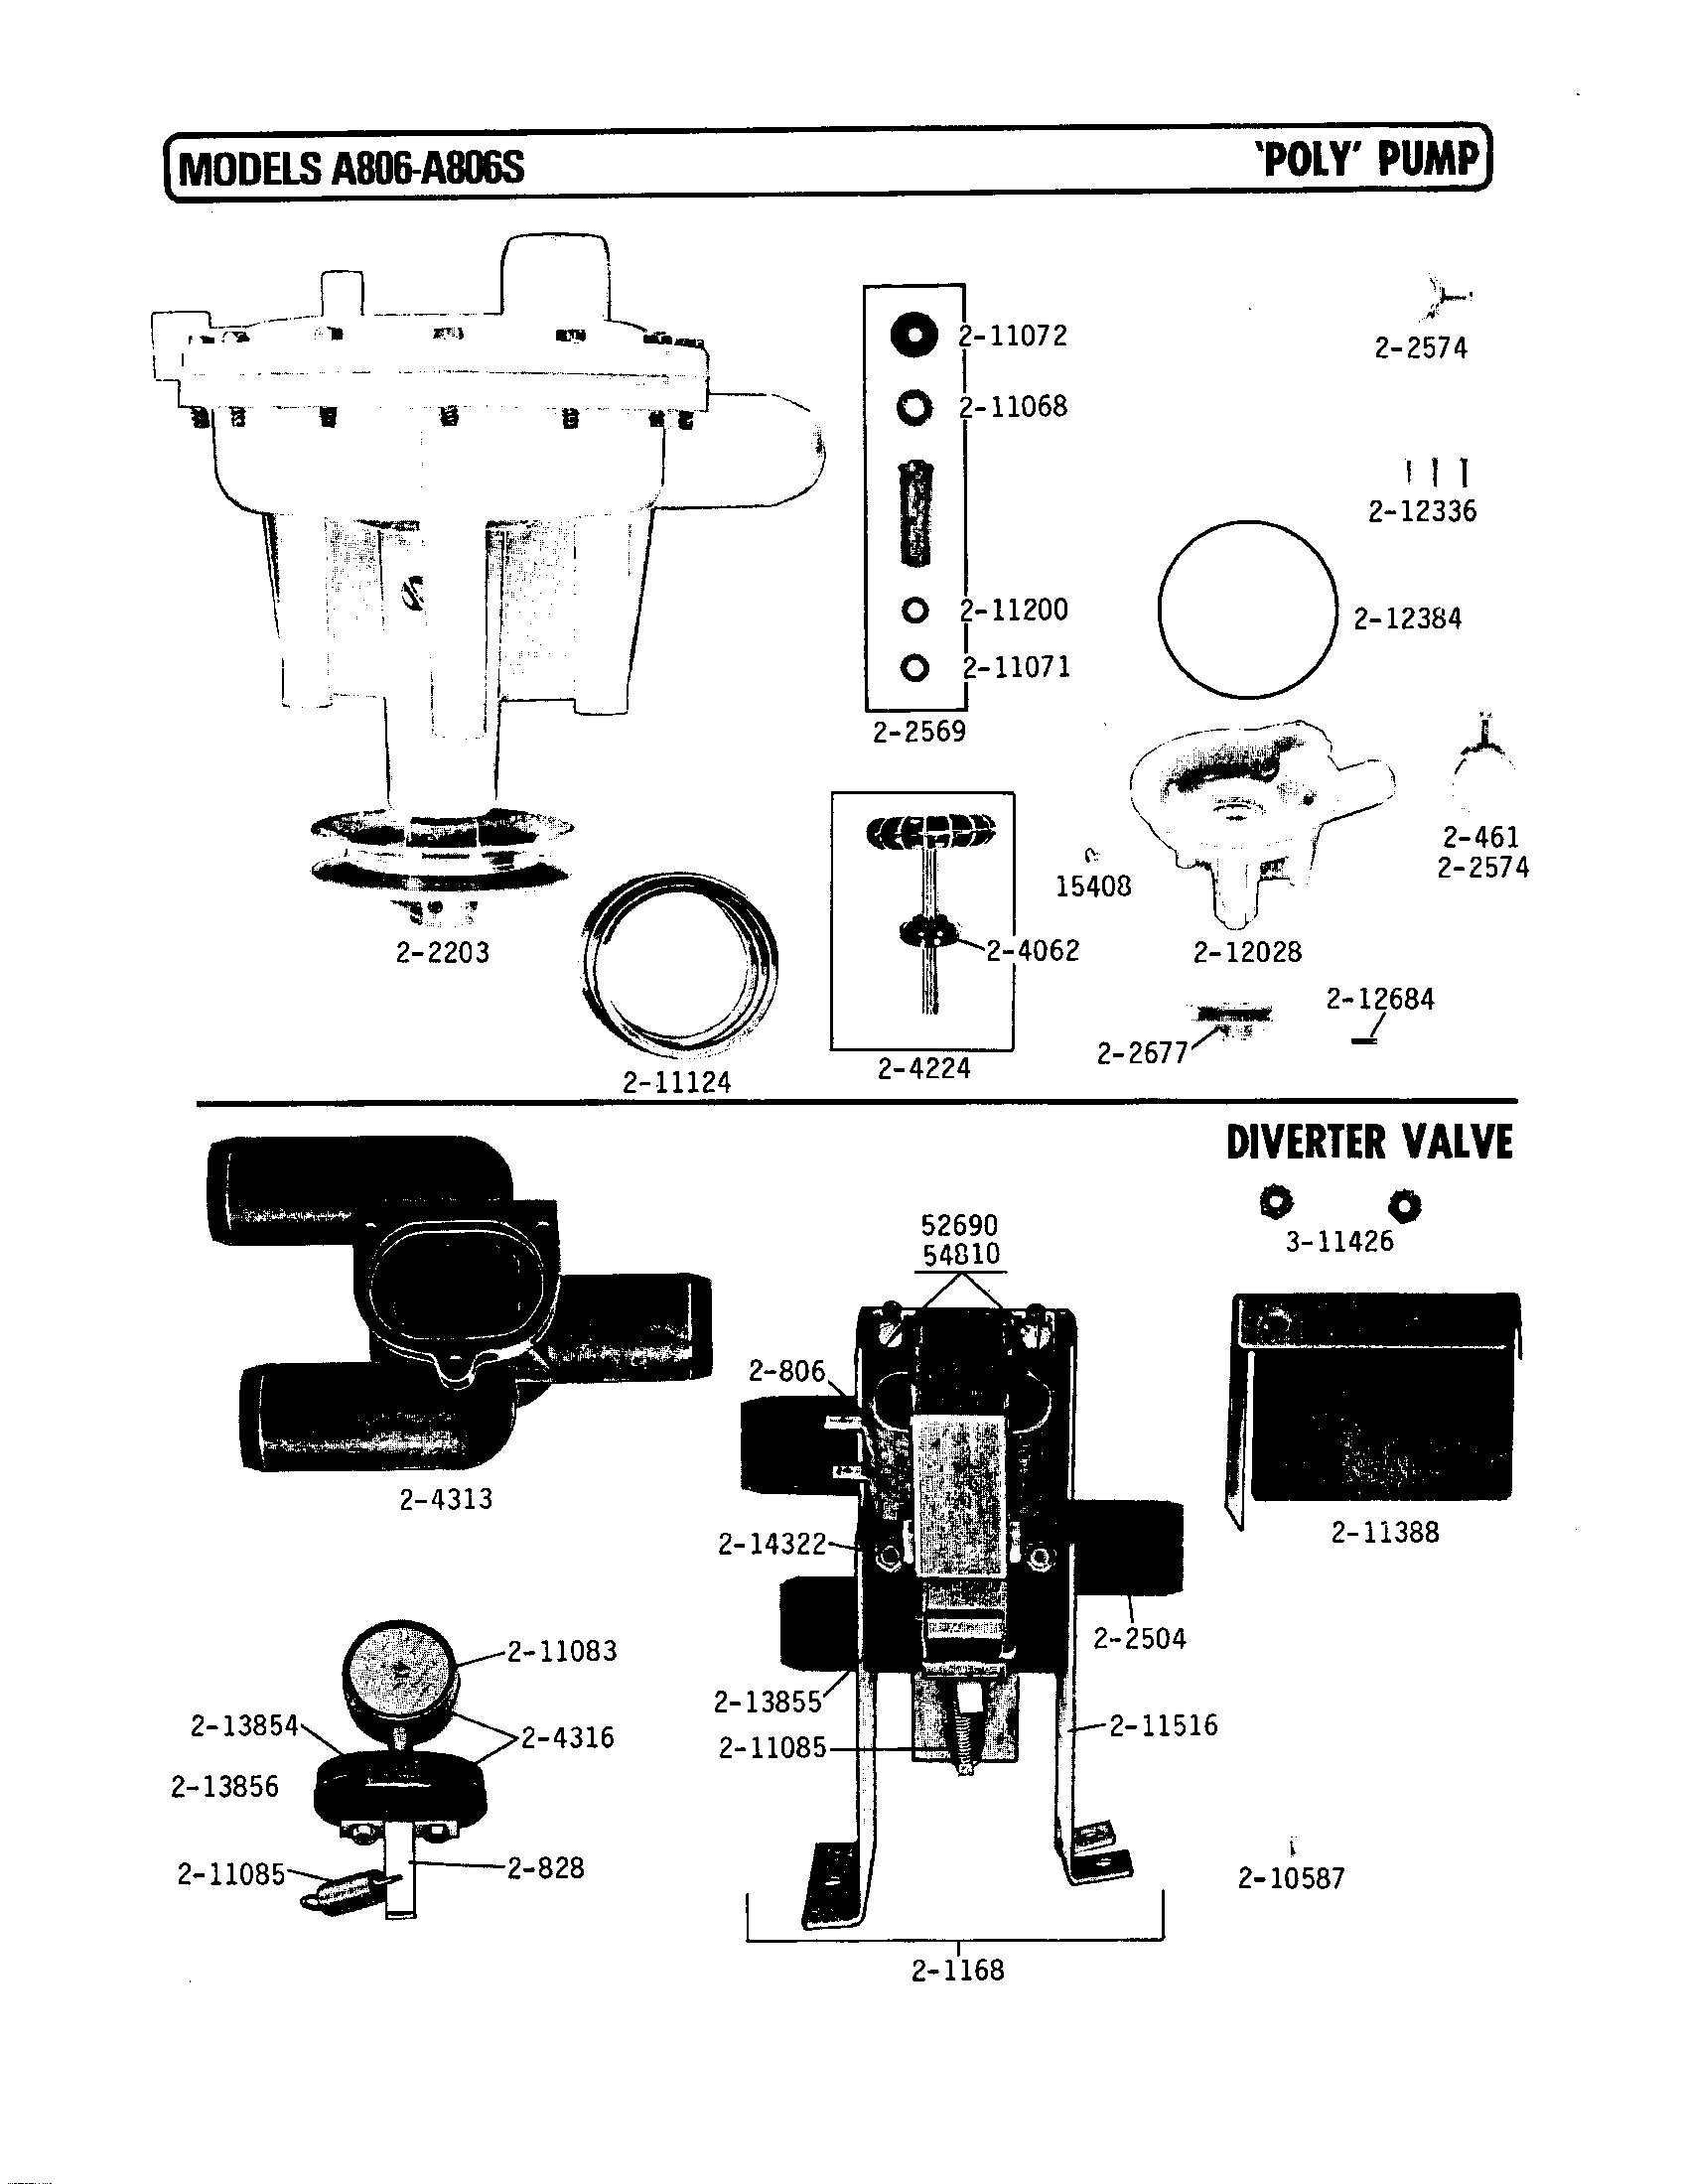 28 Maytag Bravos Washer Parts Diagram